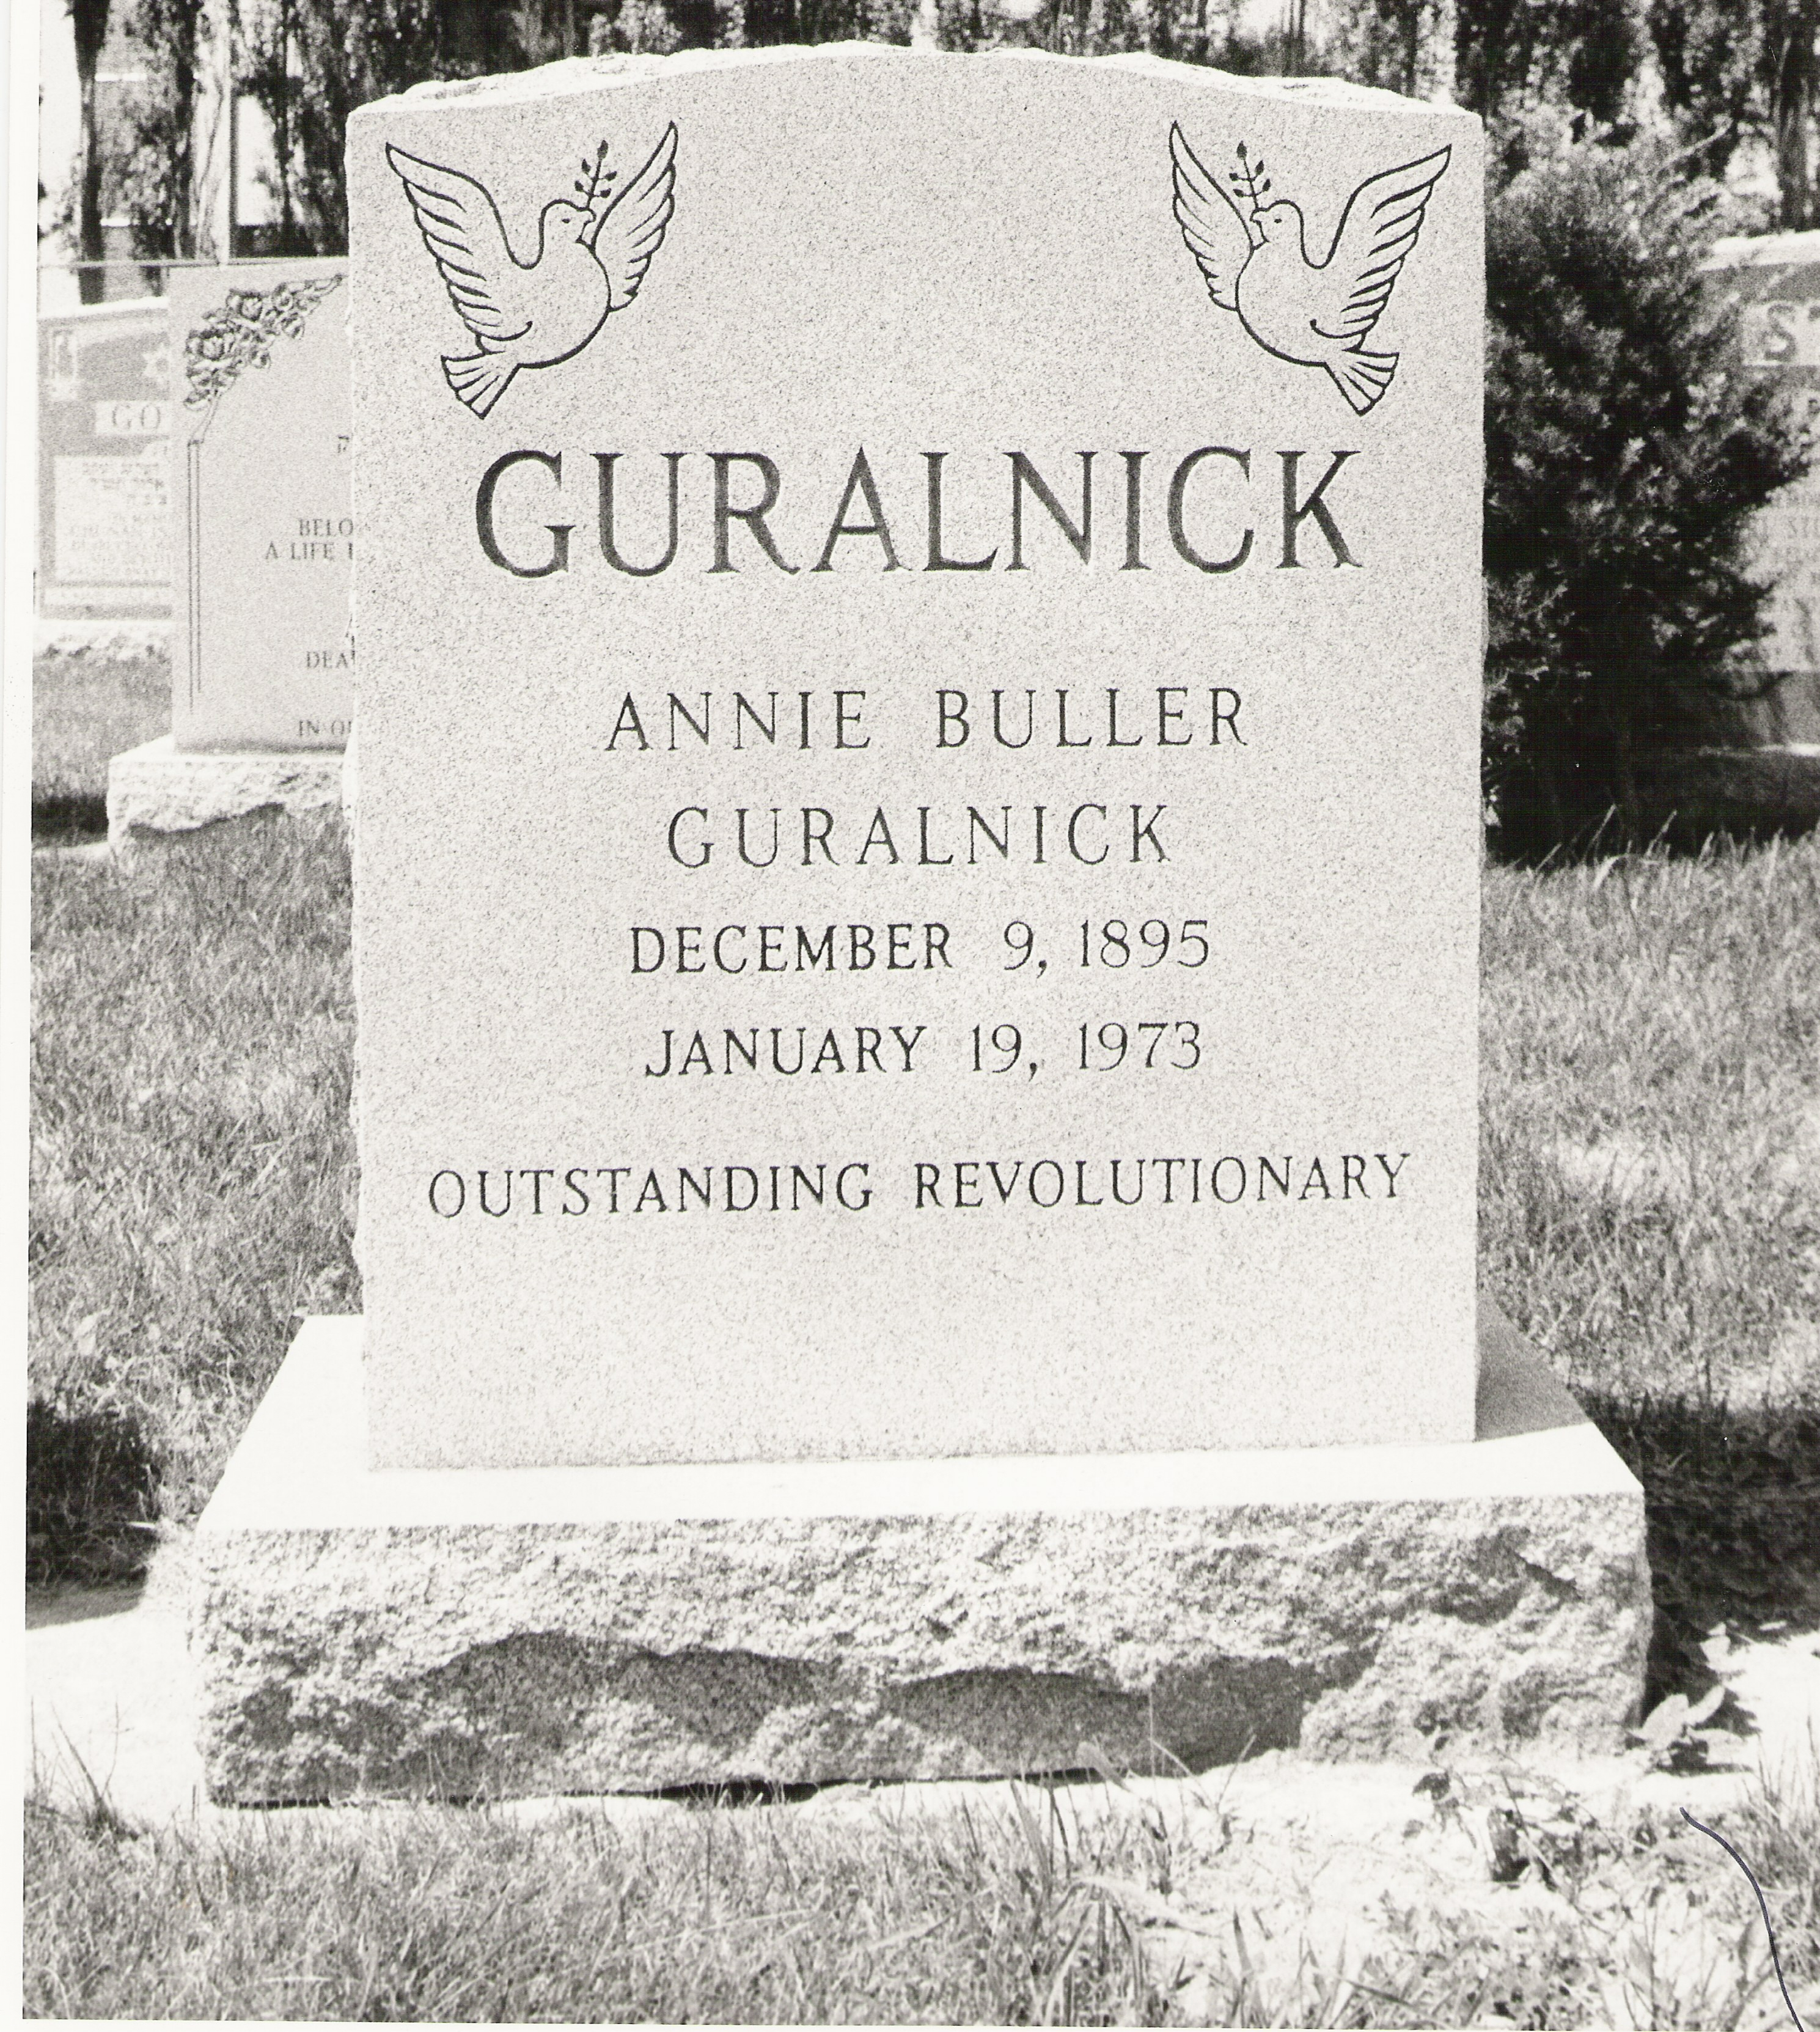 Annie Buller tombstone